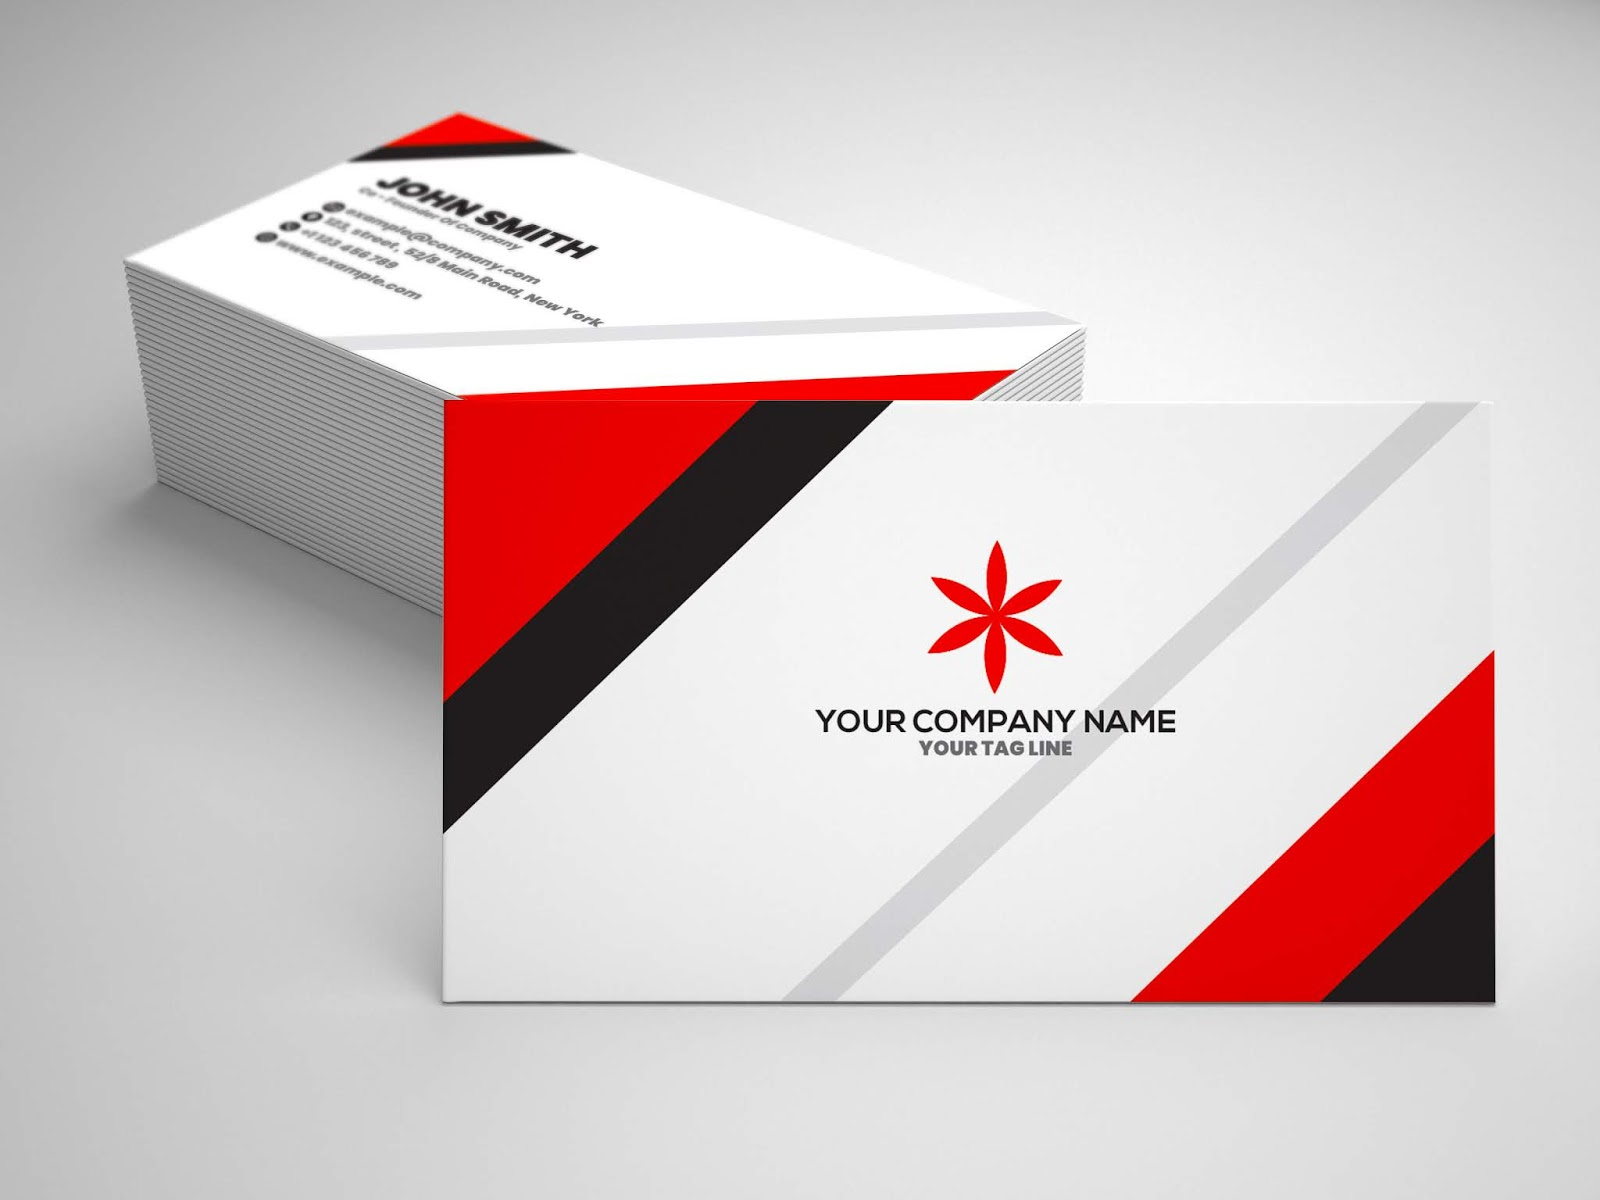 How To Make Double Sided Business Cards In Ilrator